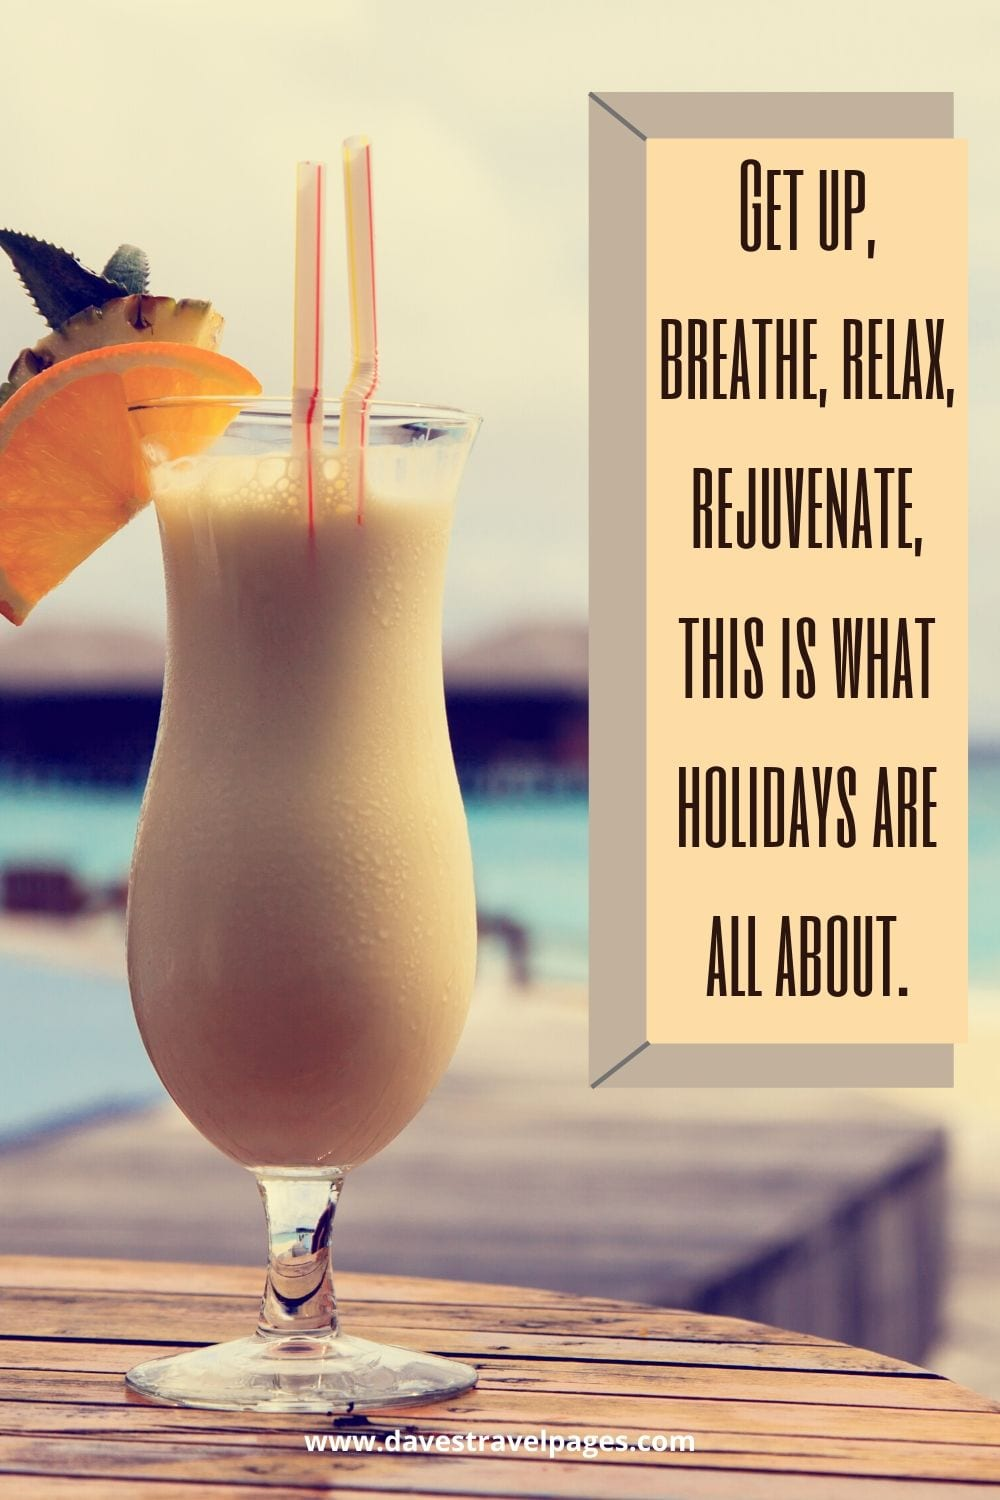 Holiday Captions: Get up, breathe, relax, rejuvenate, this is what holidays are all about.